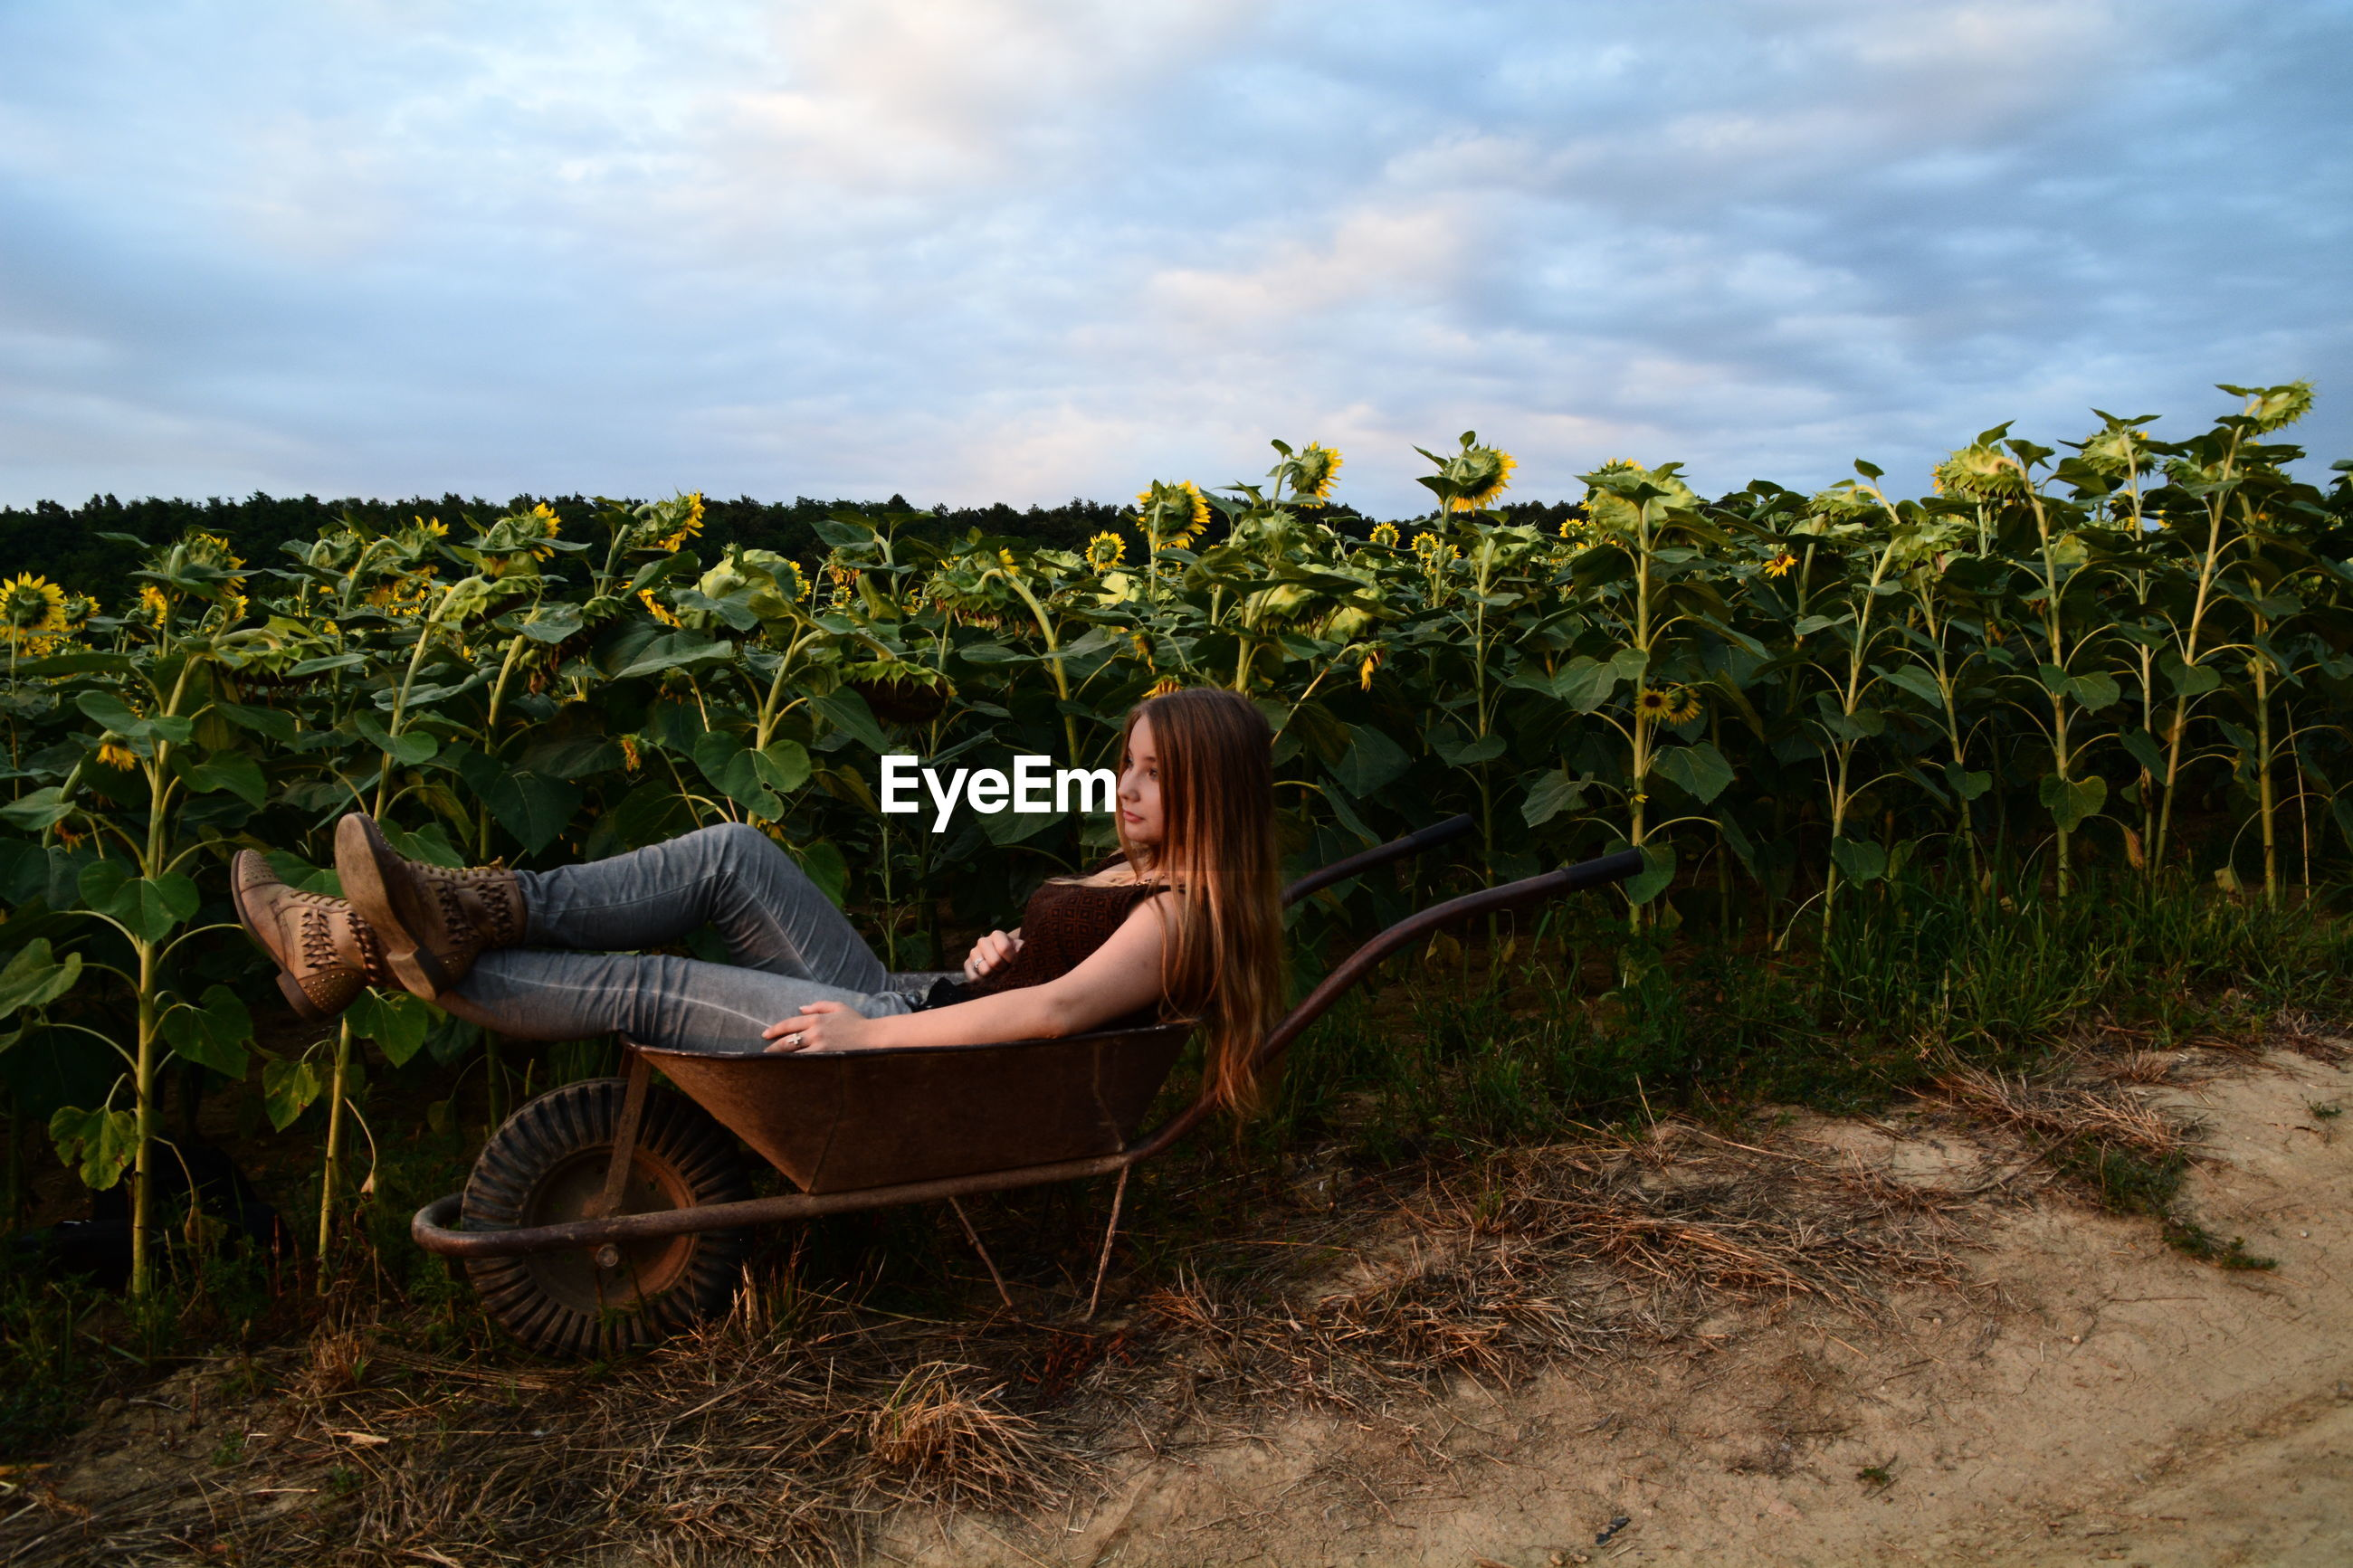 Full length of young woman resting on wheelbarrow by sunflower field